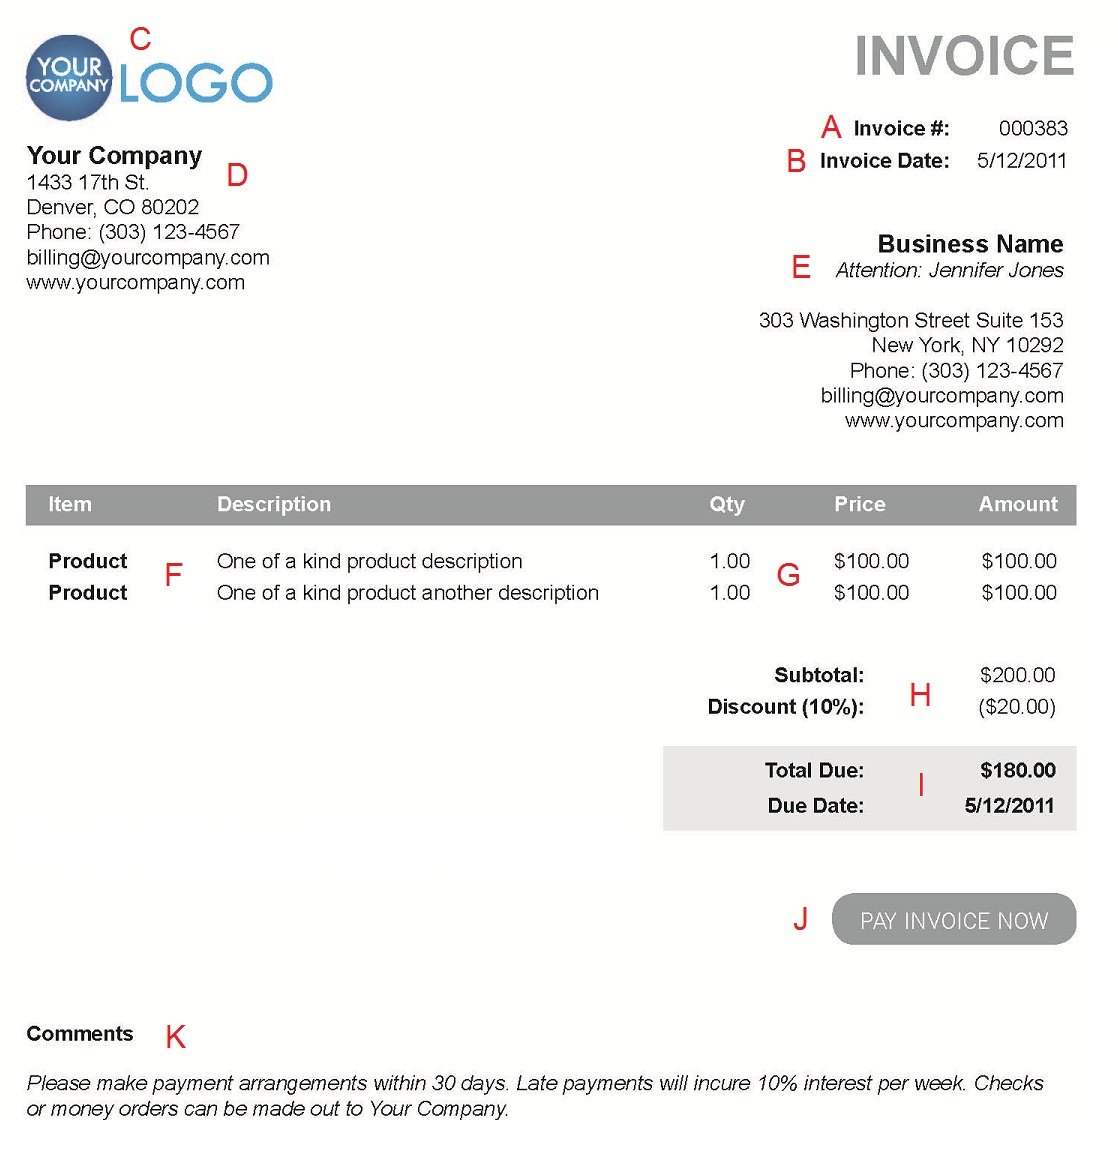 Aaaaeroincus  Picturesque The  Different Sections Of An Electronic Payment Invoice With Fascinating A  With Appealing Quick Books Invoicing Also Invoice Software Review In Addition How Do I Send An Invoice Through Paypal And Filling Out An Invoice As Well As Canadian Customs Invoice Template Additionally Video Invoice From Paysimplecom With Aaaaeroincus  Fascinating The  Different Sections Of An Electronic Payment Invoice With Appealing A  And Picturesque Quick Books Invoicing Also Invoice Software Review In Addition How Do I Send An Invoice Through Paypal From Paysimplecom